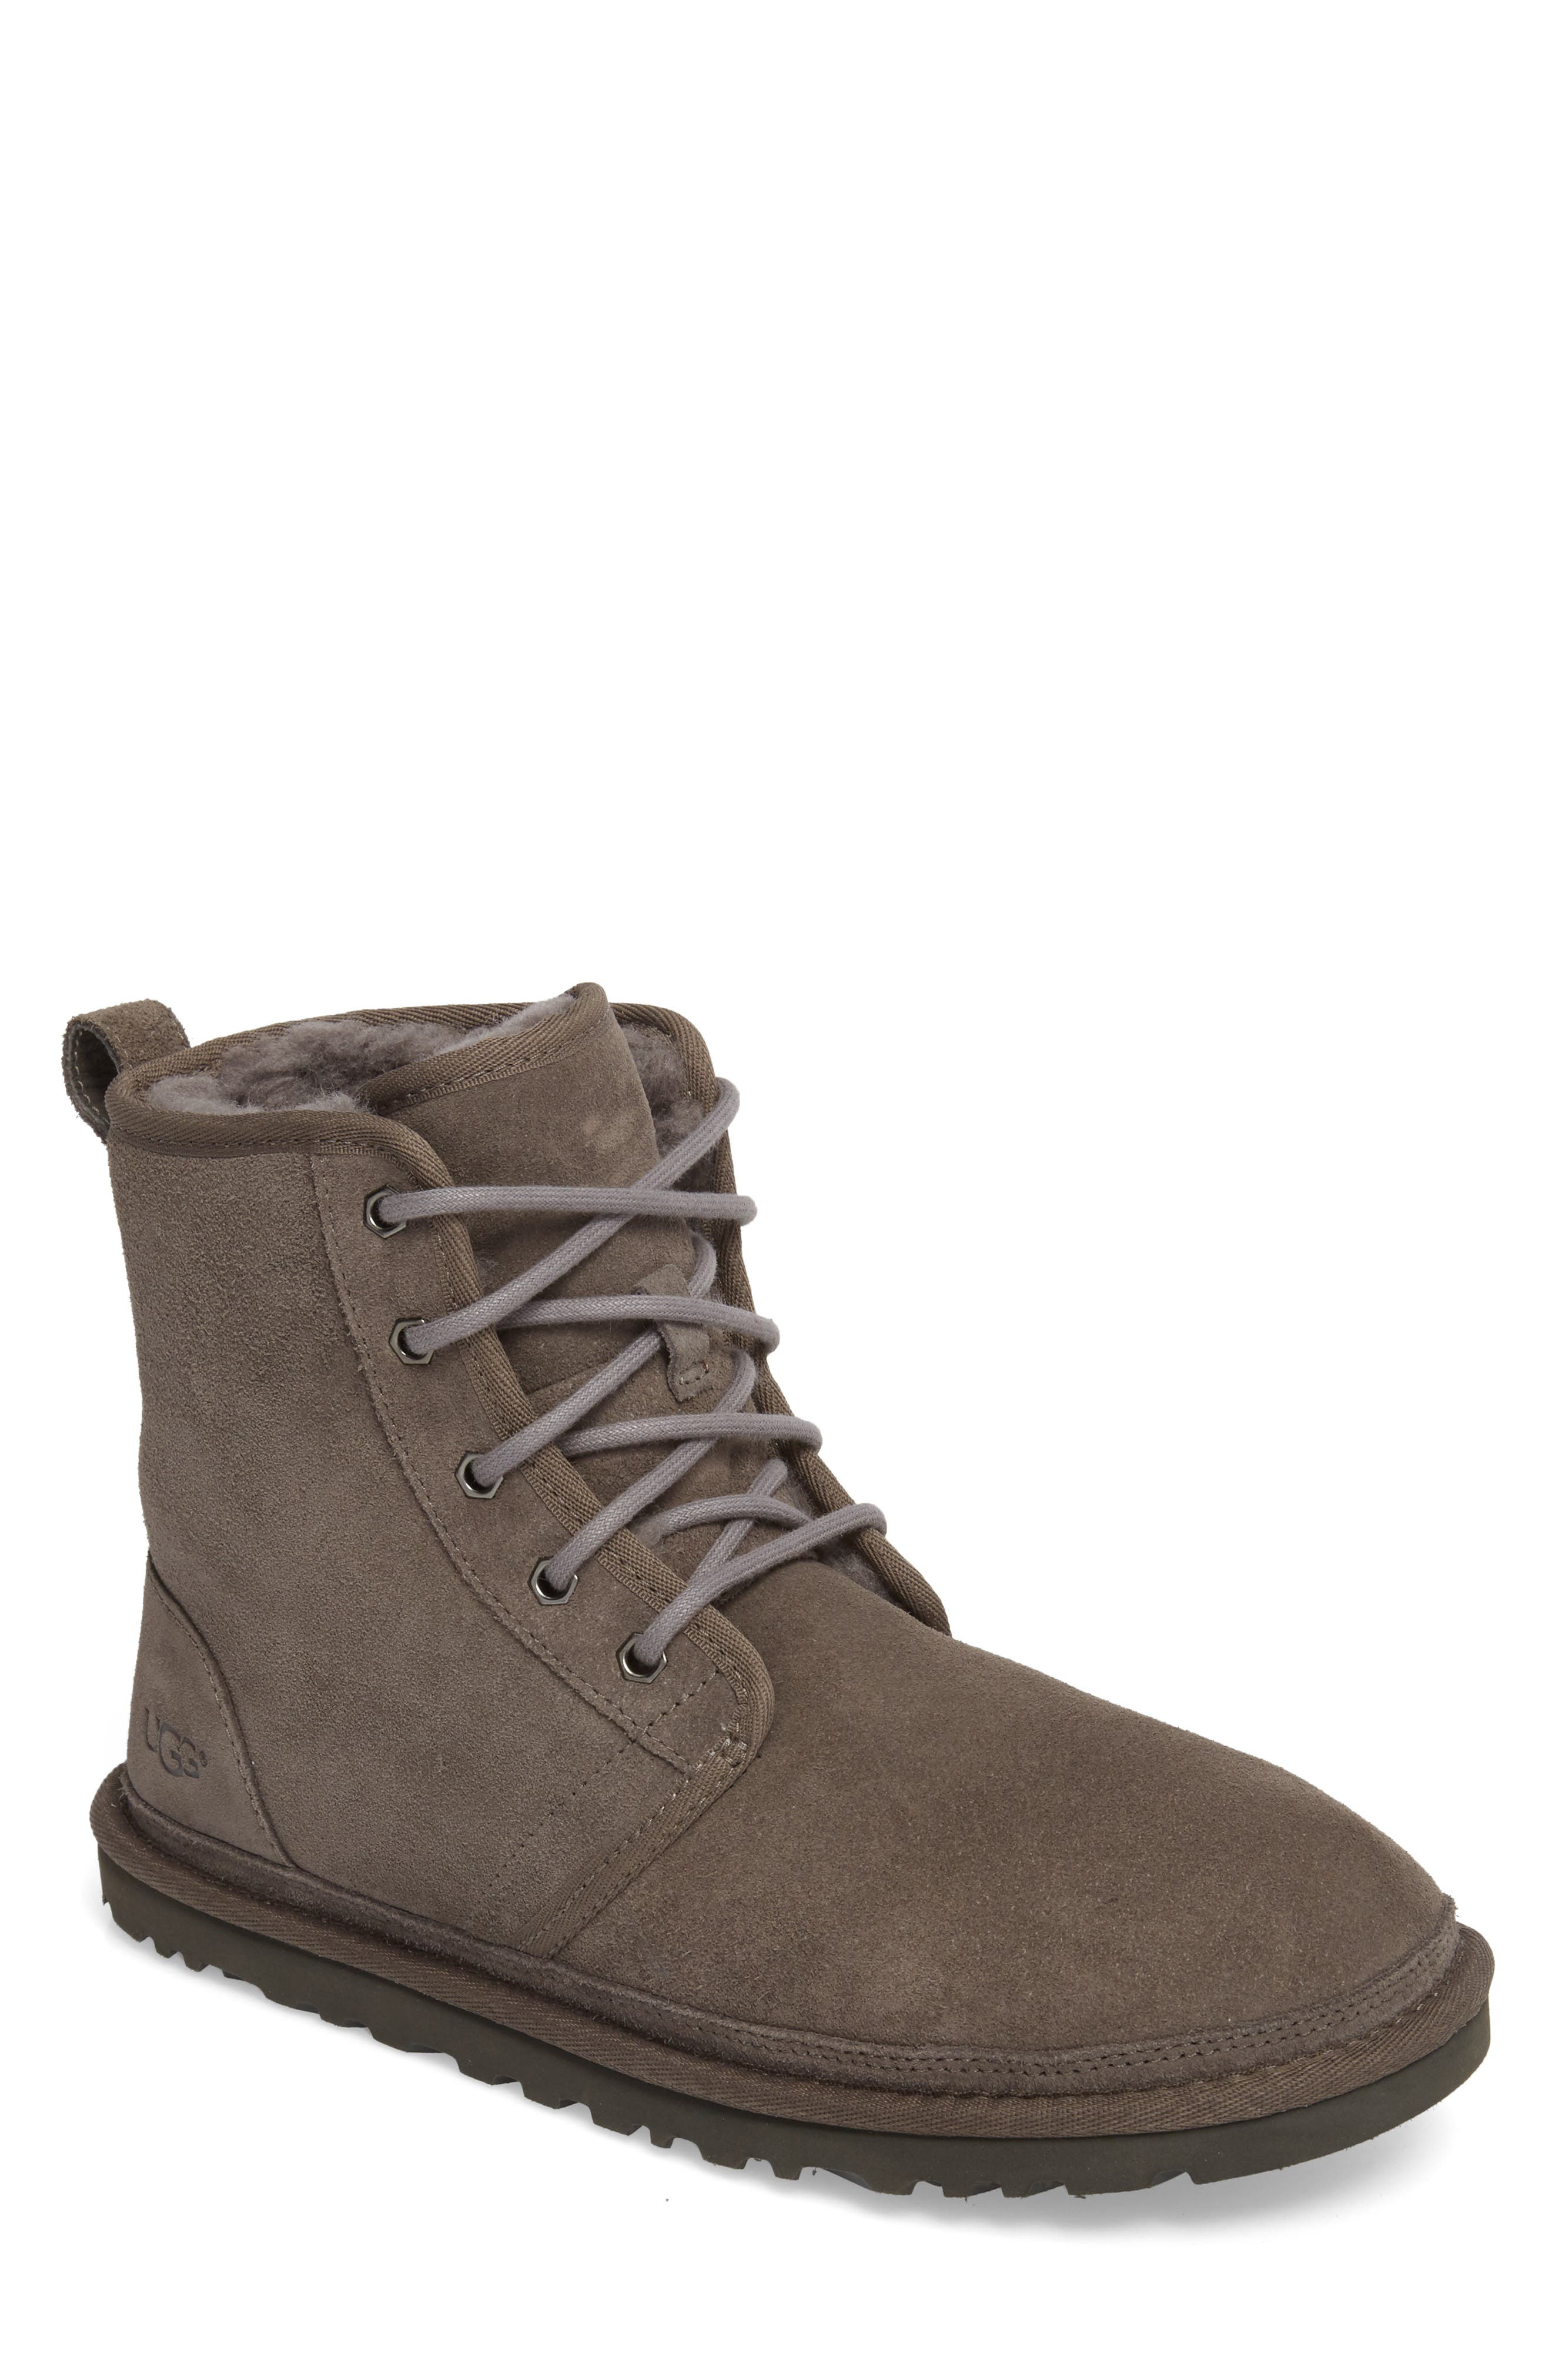 Ugg Harkley Lace-Up Boot, Grey